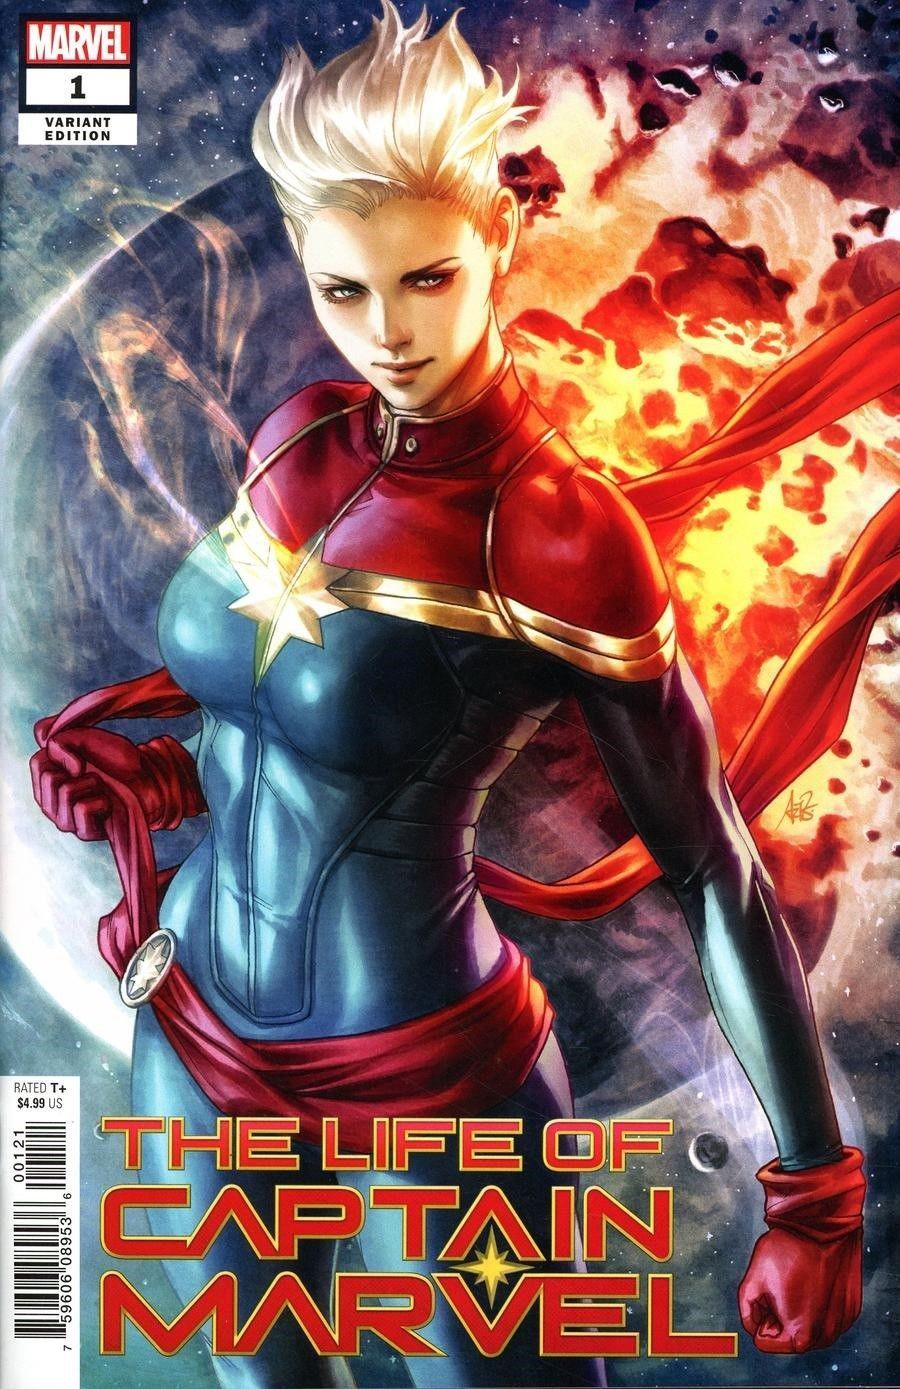 LIFE OF CAPTAIN MARVEL #1 (OF 5) ARTGERM VAR (07/18/2018)